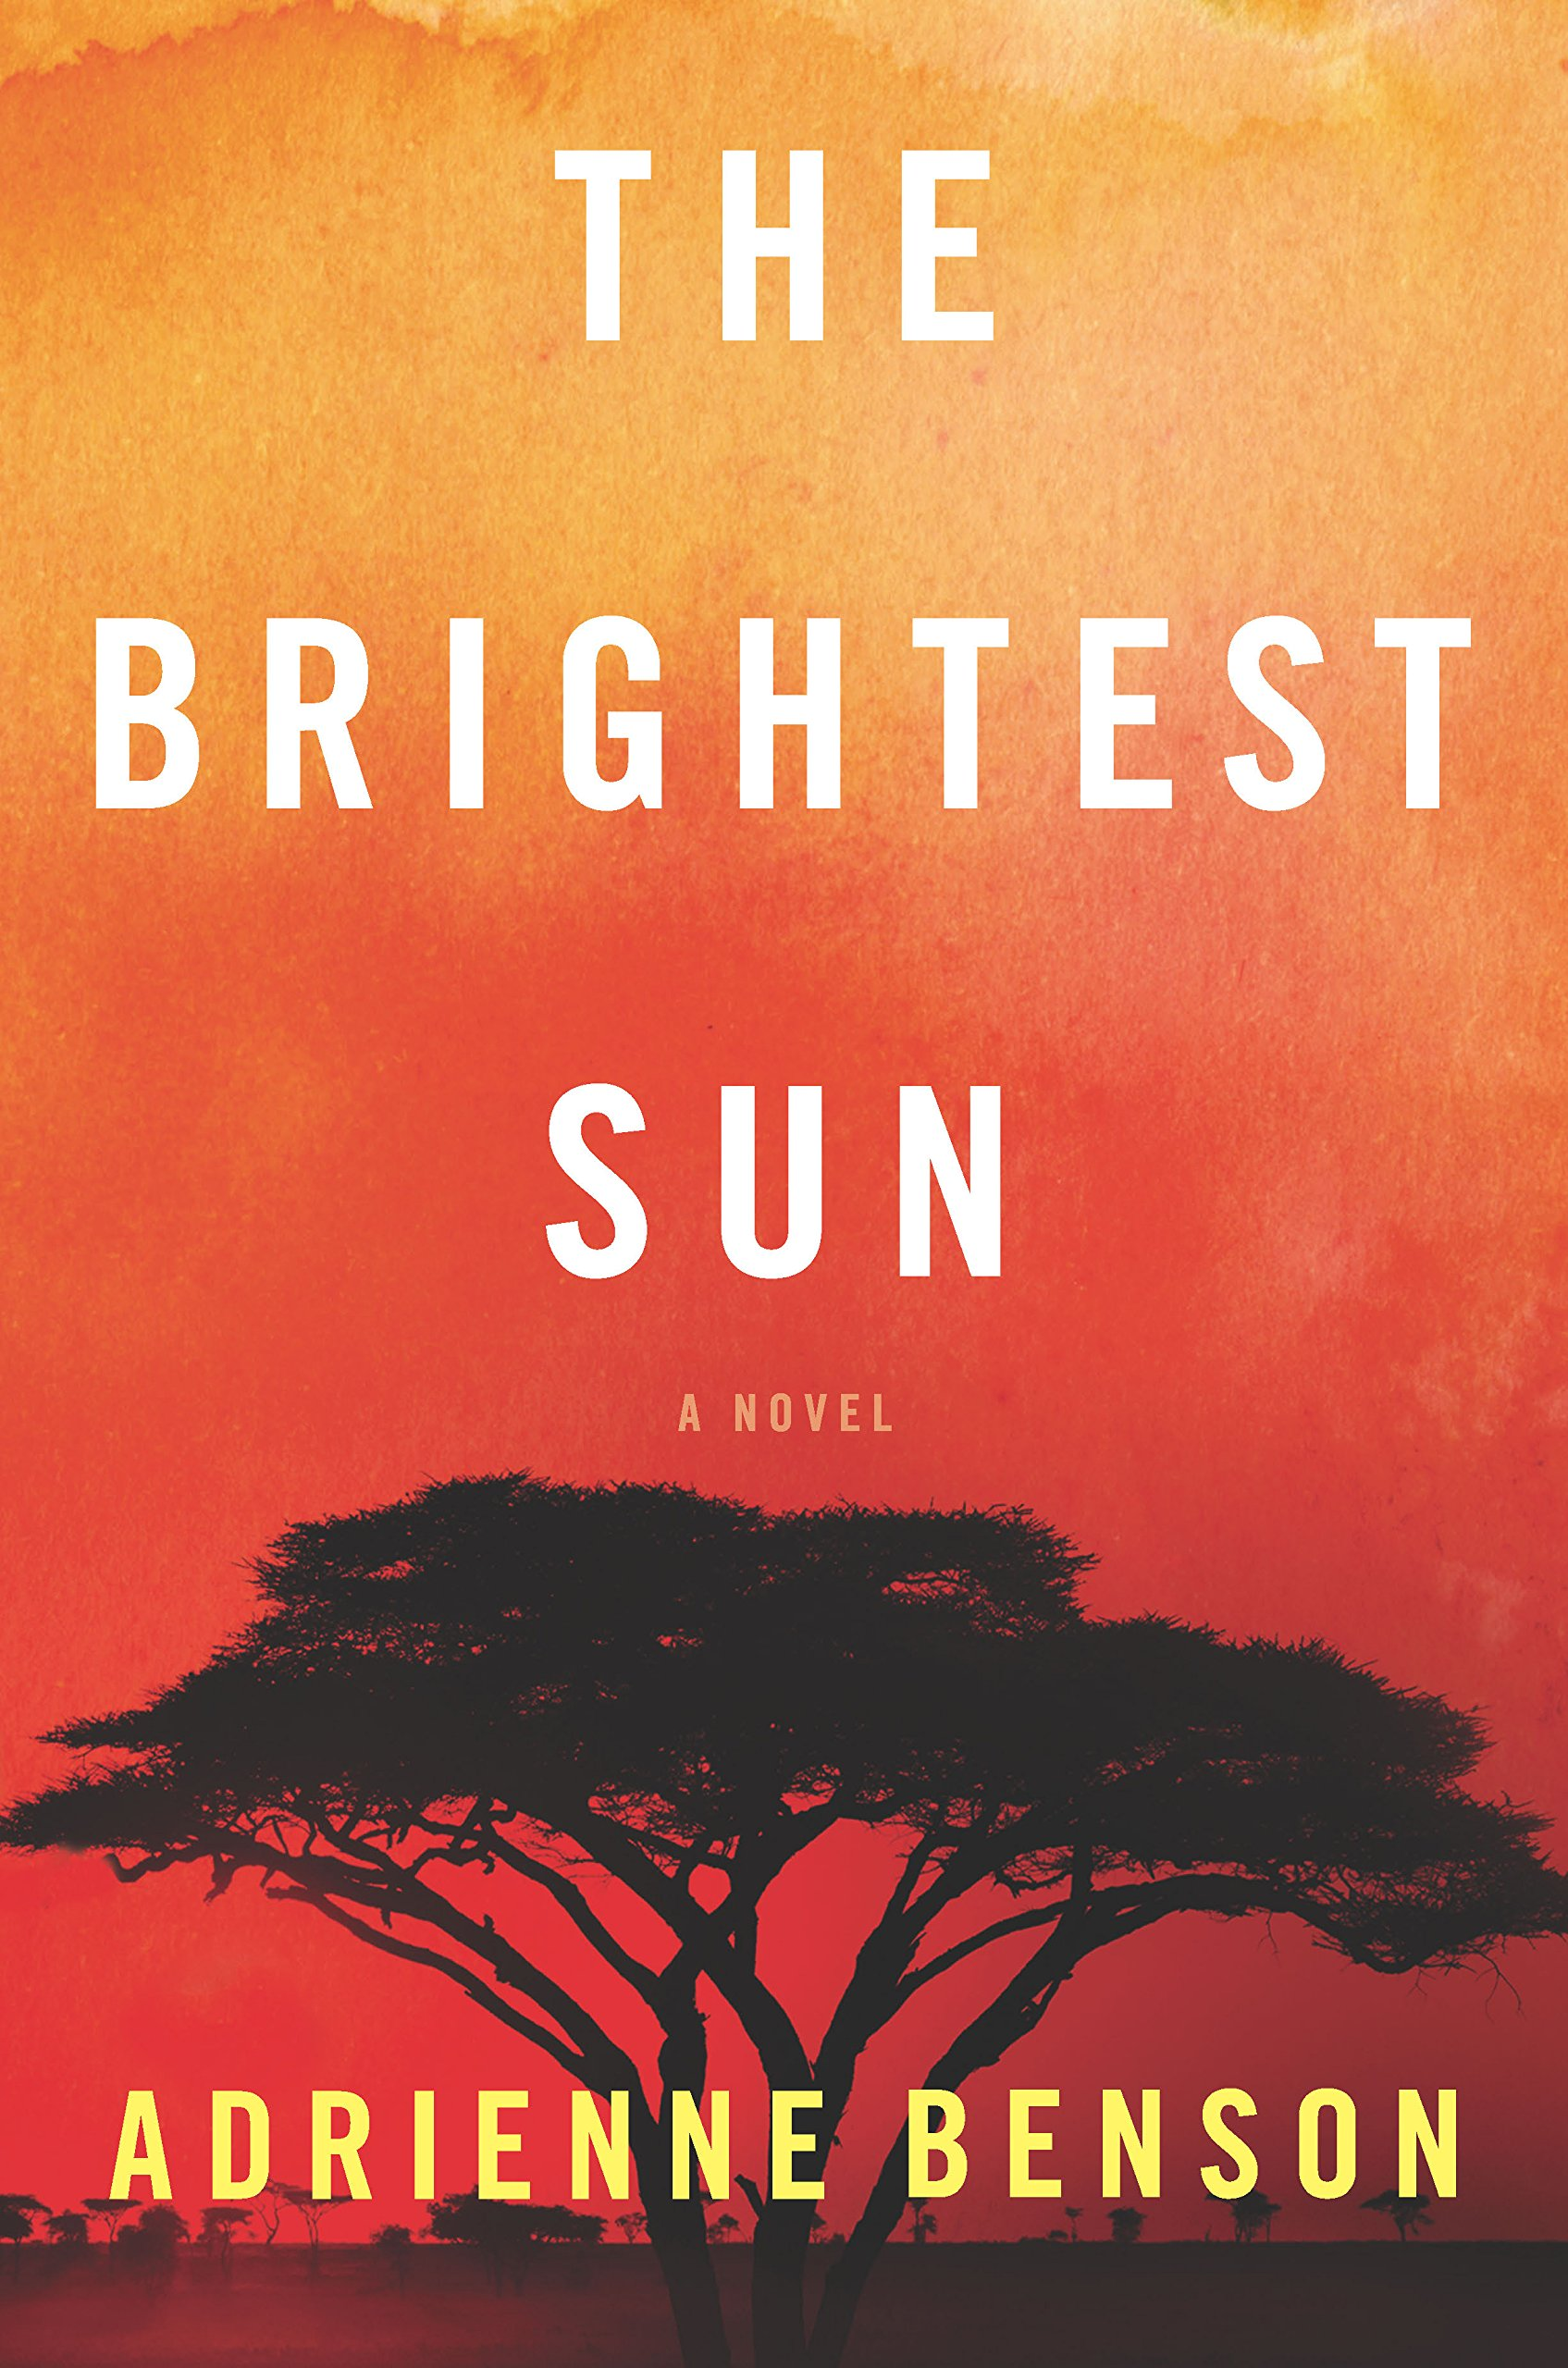 Image result for the brightest sun adrienne benson